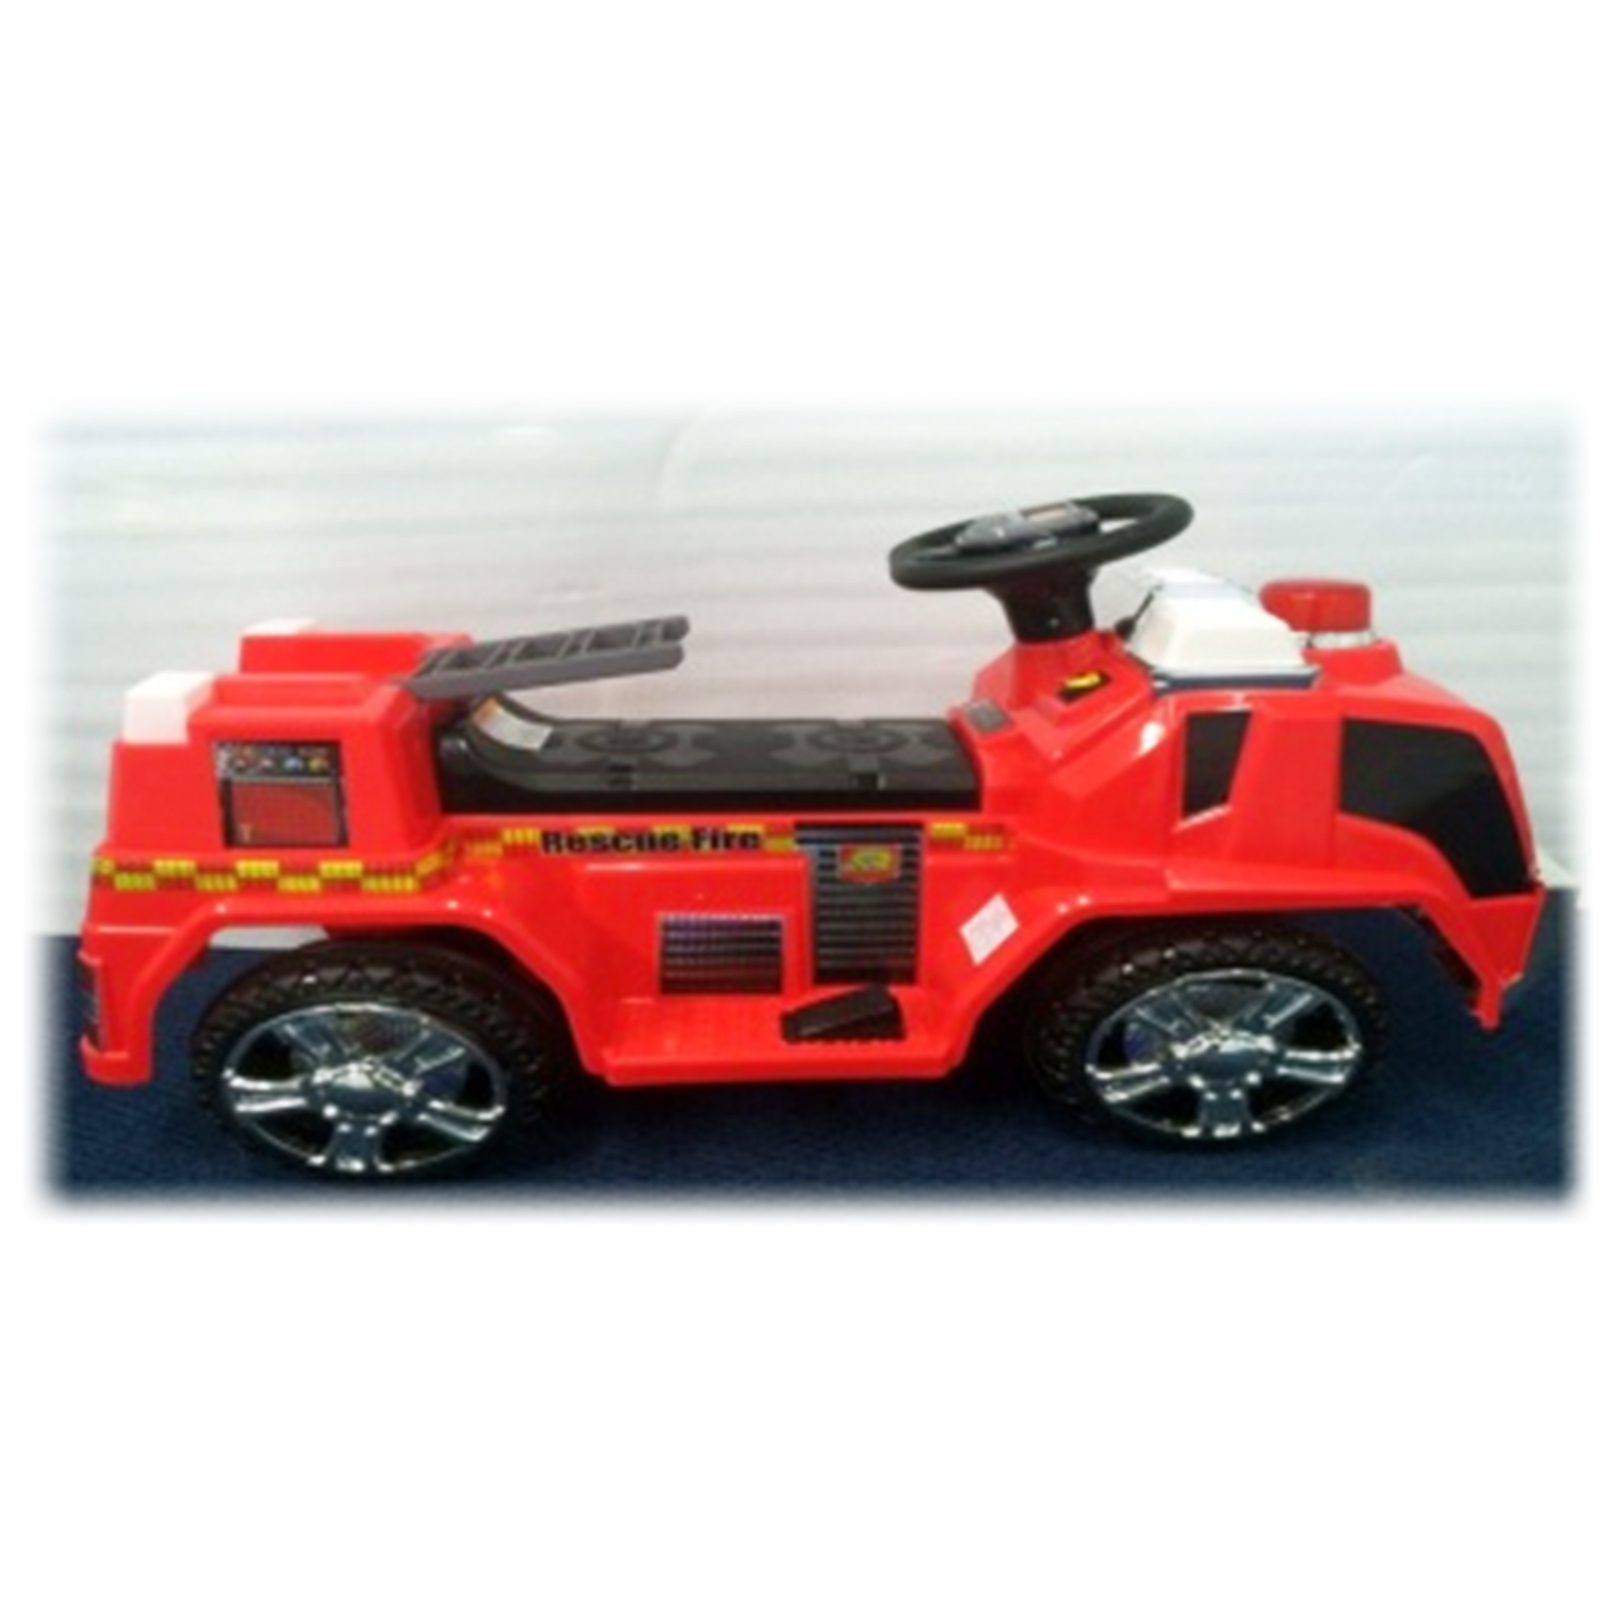 Fire Truck Kids Battery Powered Ride On Car in Red